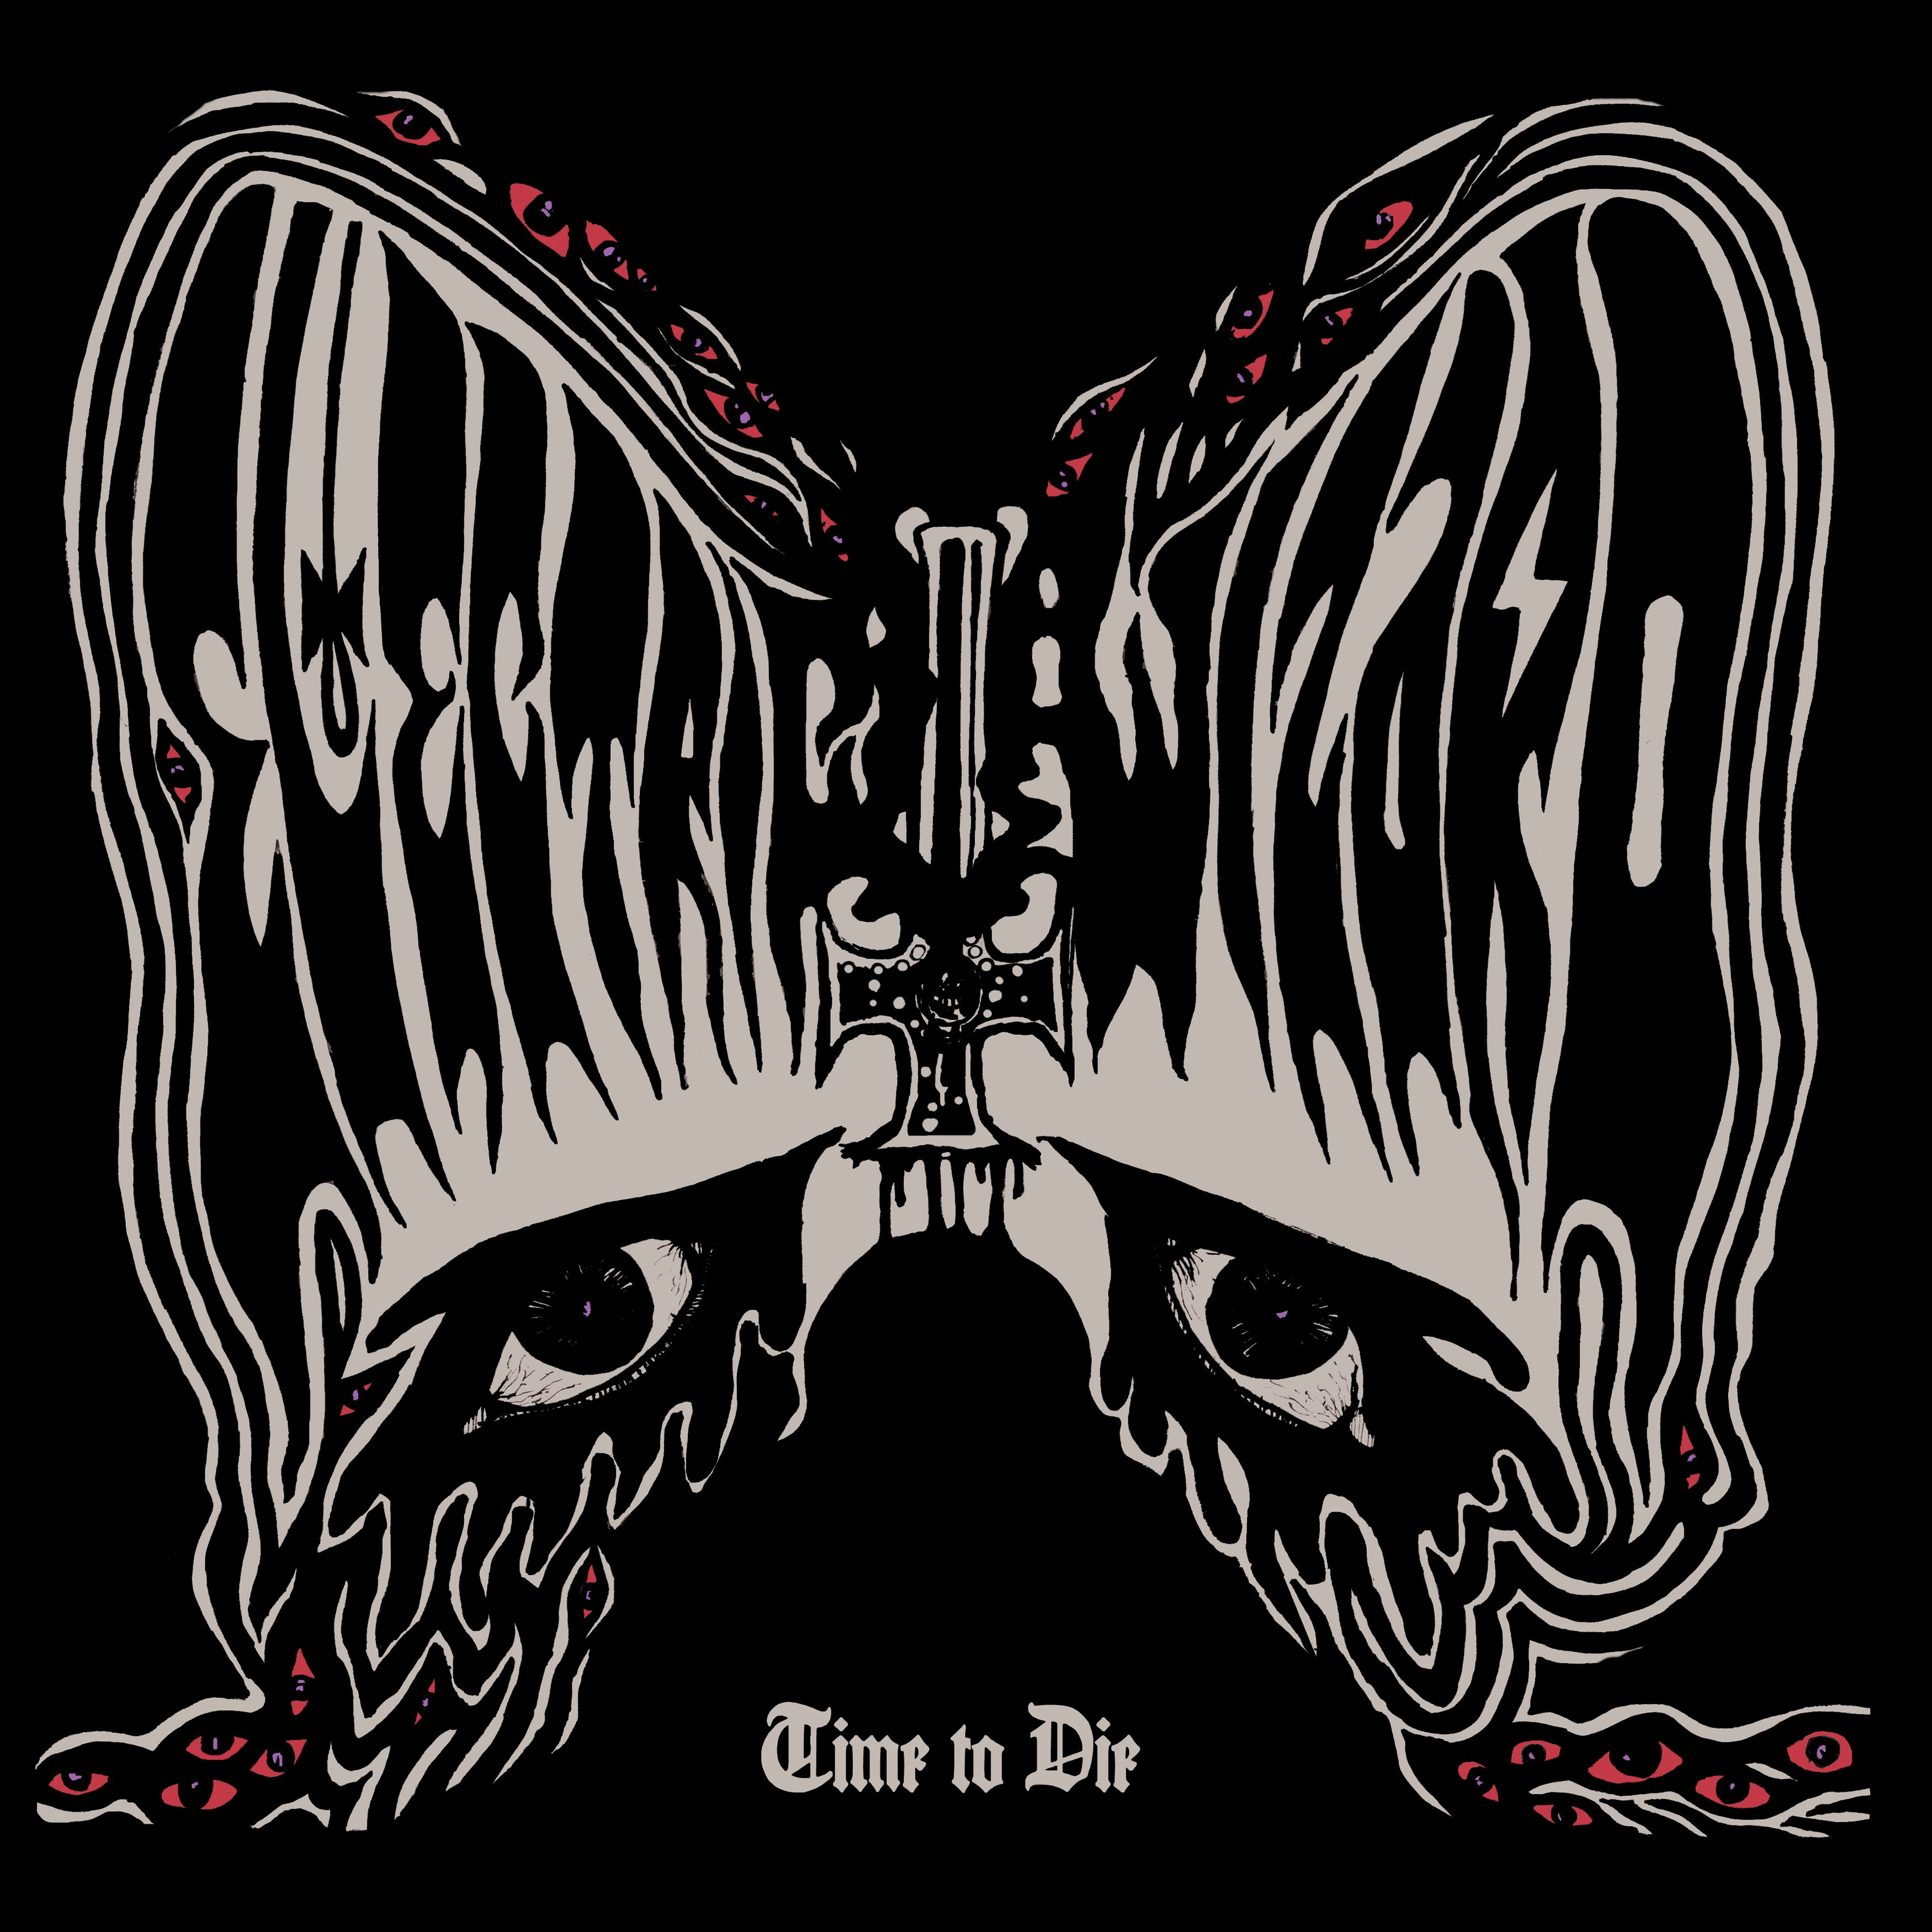 Electric Wizard - Time To Die album cover